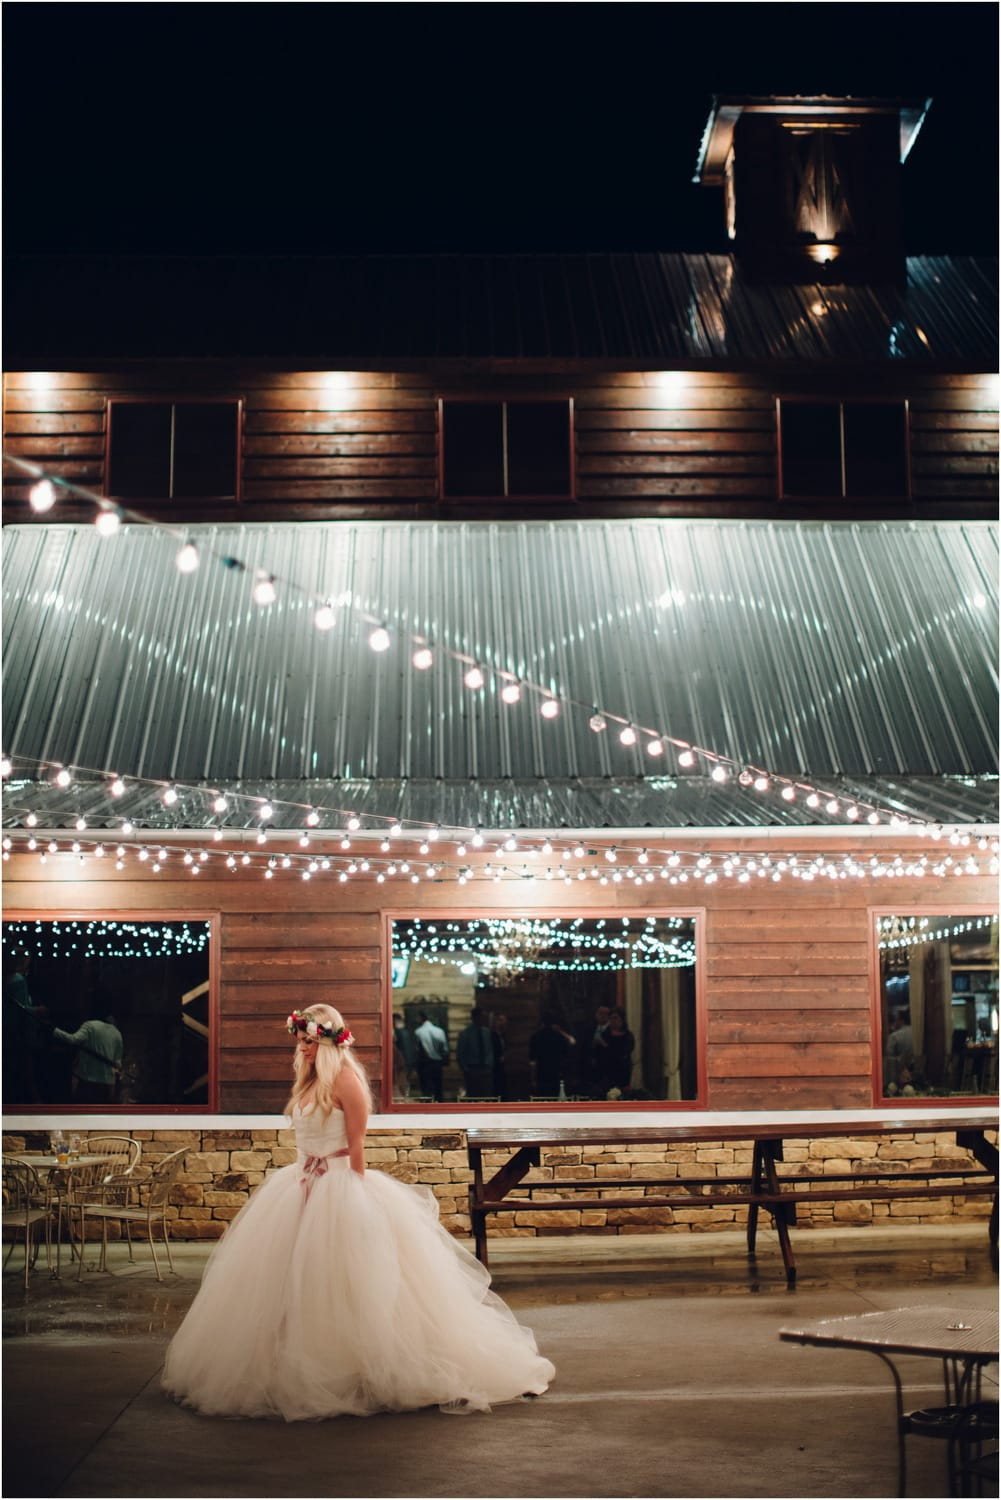 coderhillengburg_oklahoma_wedding__906_blogstomped